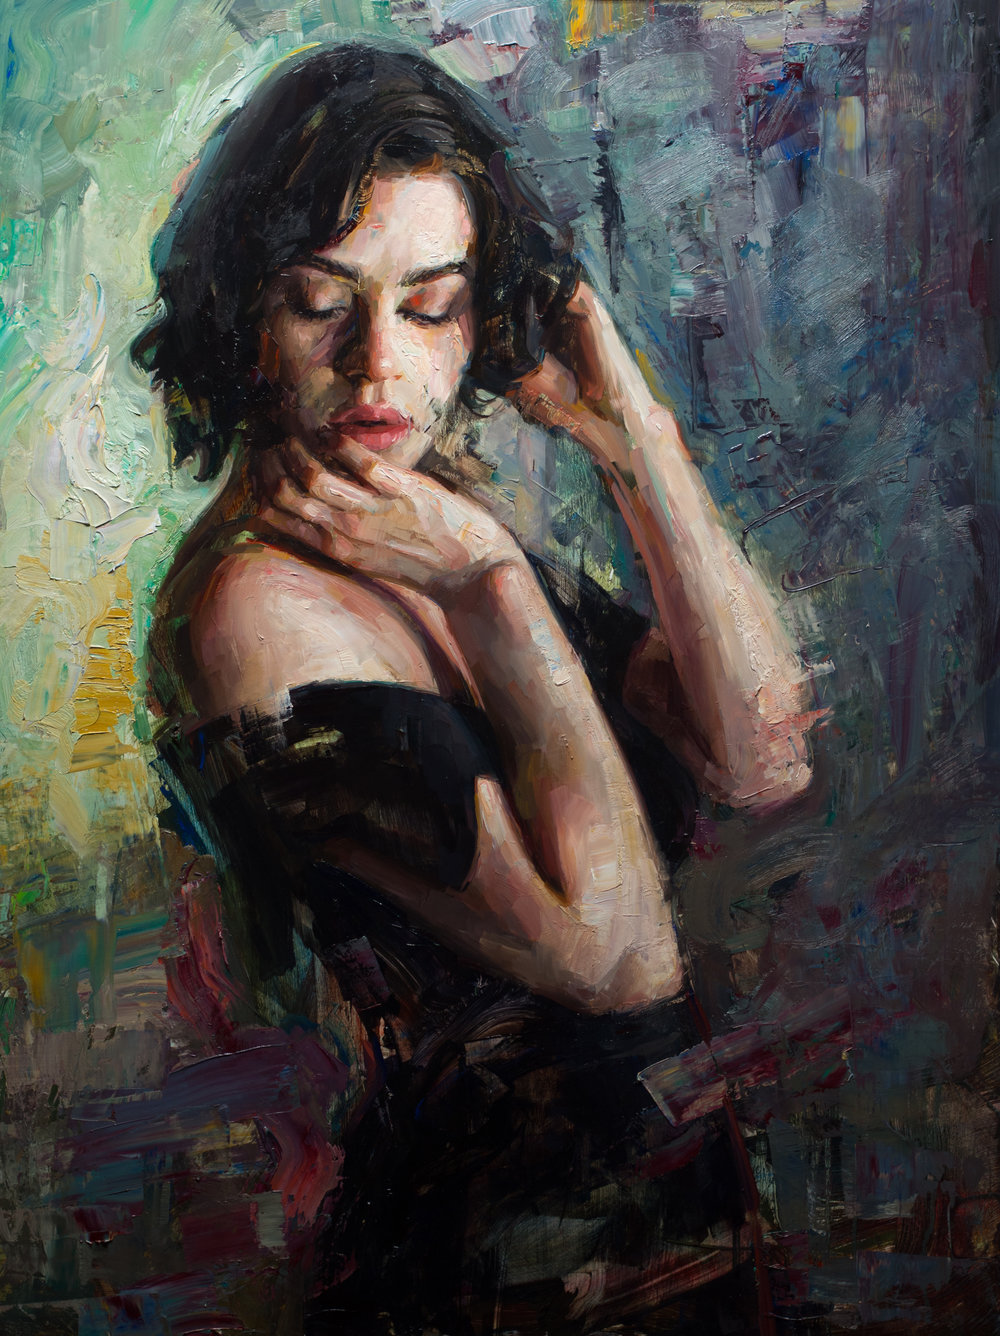 The Muse - The Muse 30x40 inches oil on panel 2017Inspired by the understated yet palpable emotions in his model's pose, Talbert created The Muse, especially focusing on the elegantly arching interplay between facial and gestural expressions. The rough, colorful impasto of the background elevates the refined delicacy of her features and somehow makes her look simultaneously vulnerable and strong.